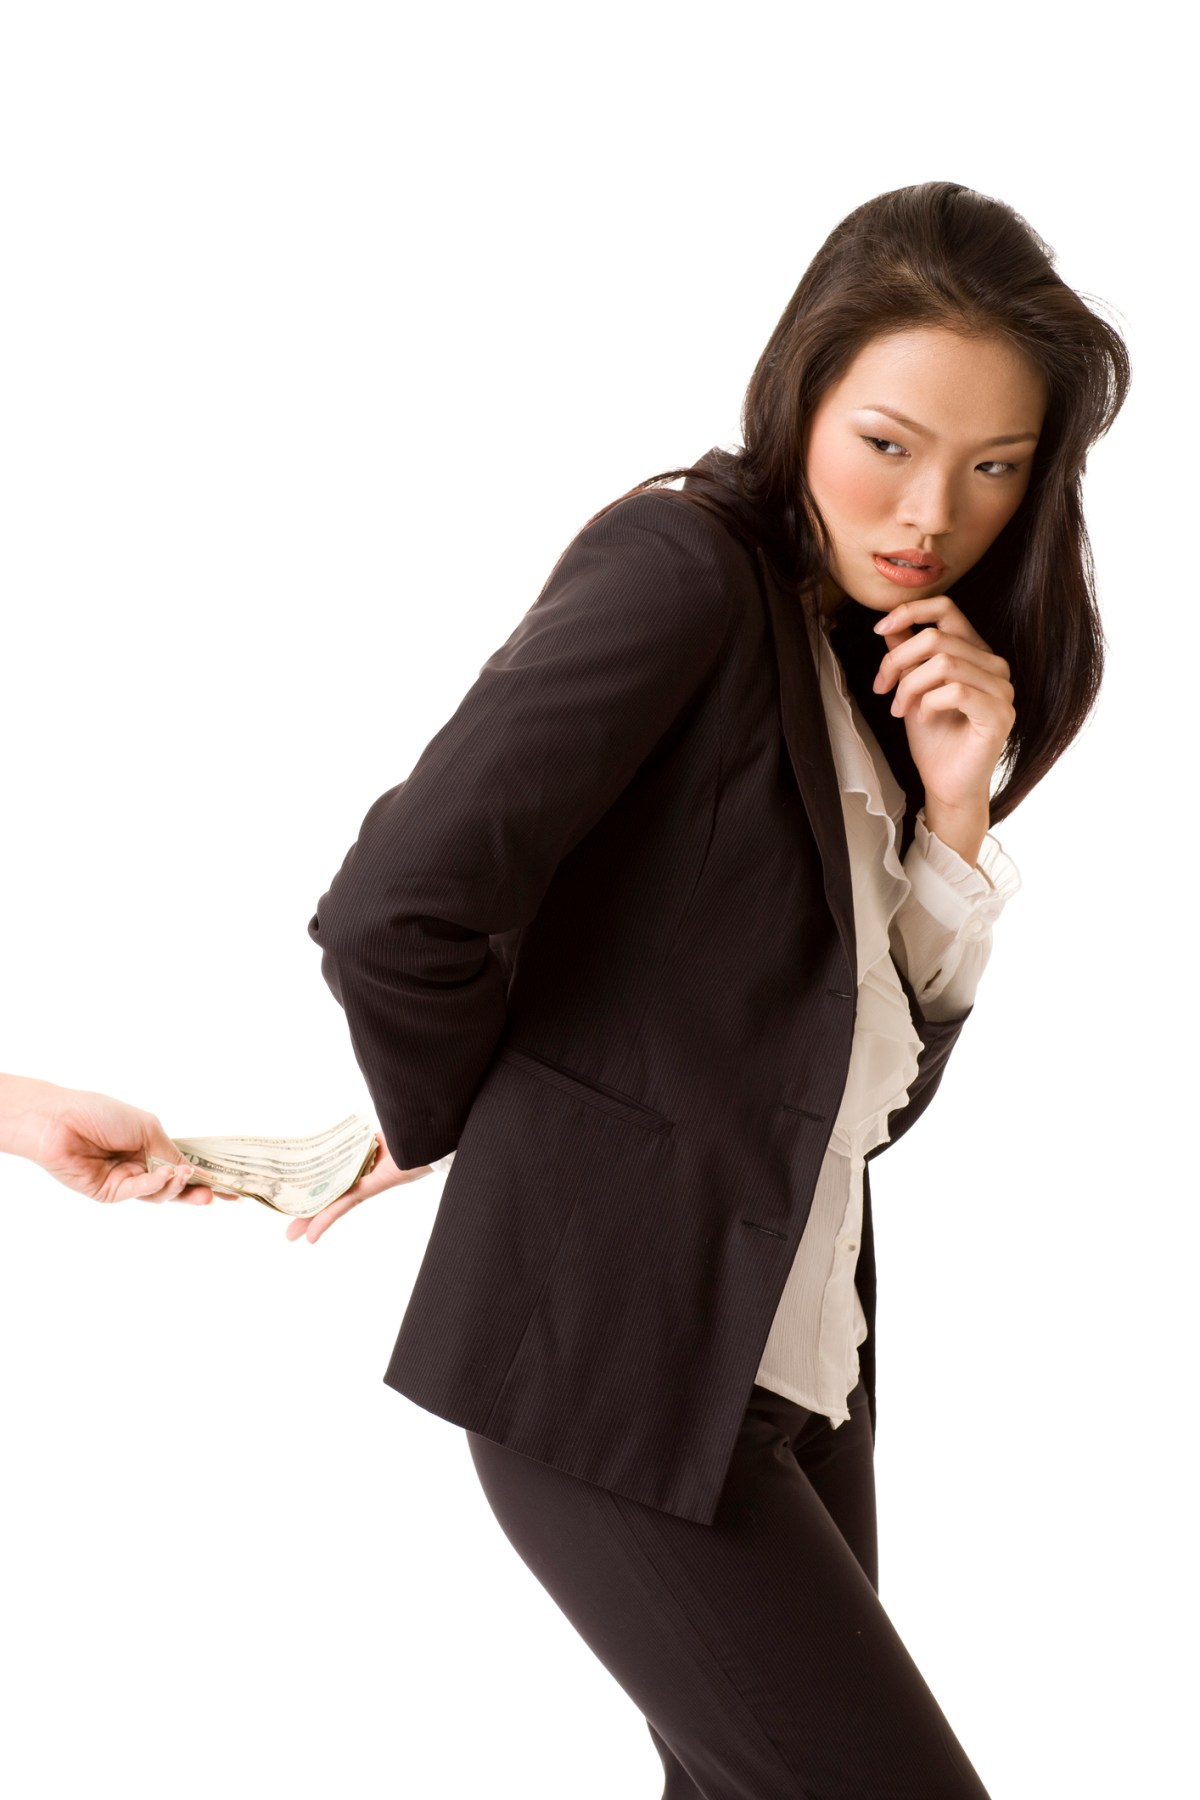 Nothing wrong here... say a disturbingly high number of young Asian professional in latest EY Fraud Survey. Photo: iStock